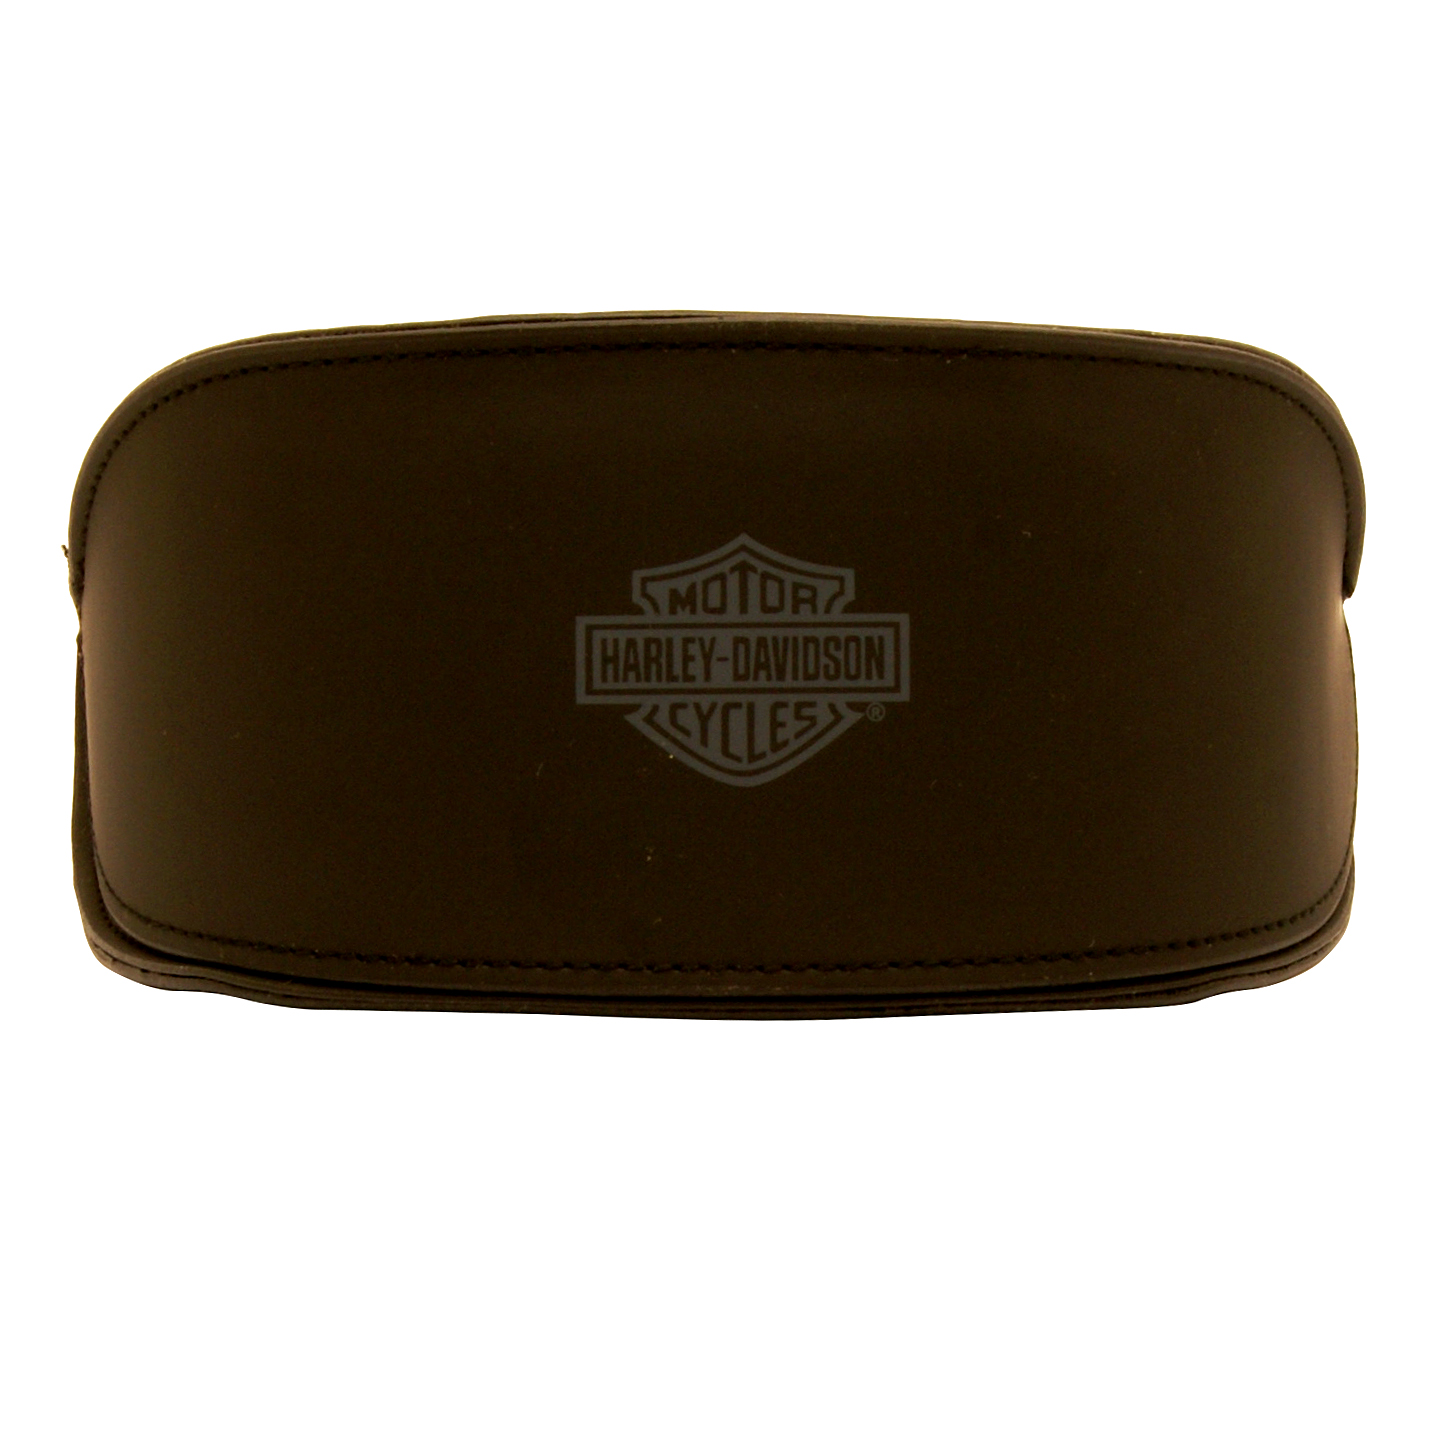 Harley Davidson – Shiny Black & Diamante Wraparound Style Sunglasses with Case